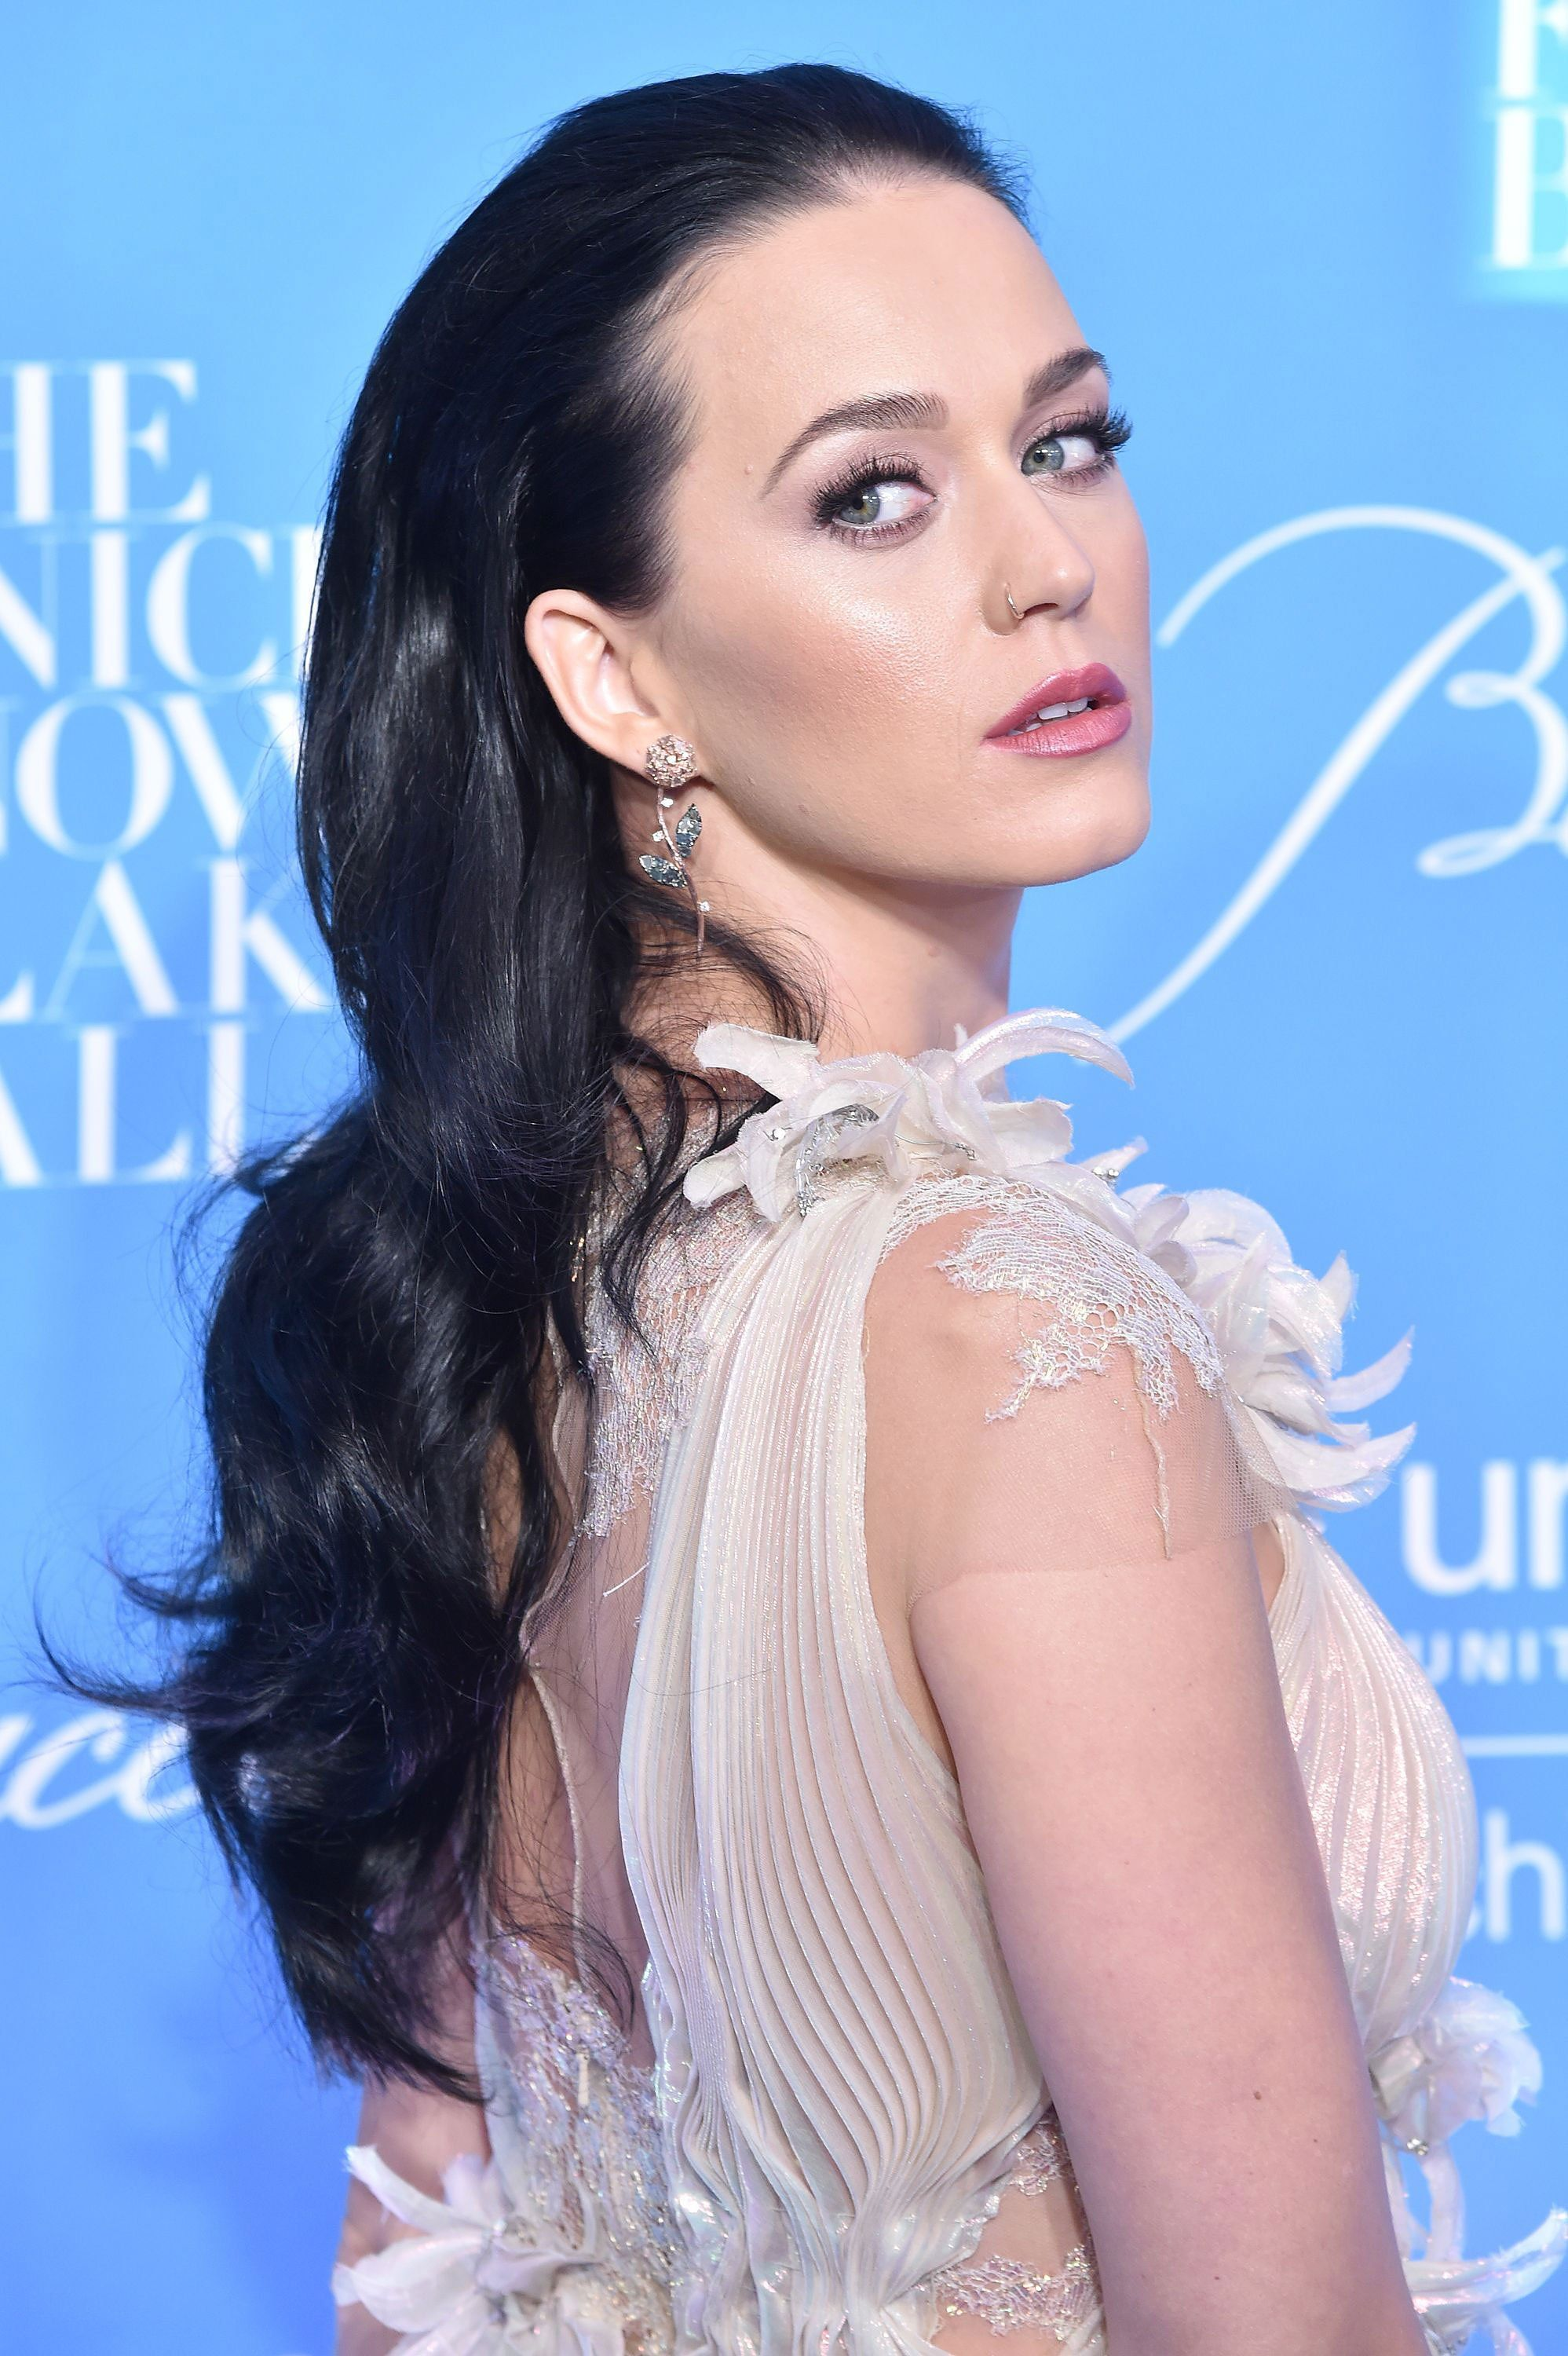 The Best Celebrity Beauty Looks: Jennifer Lawrence, Katy Perry, and More